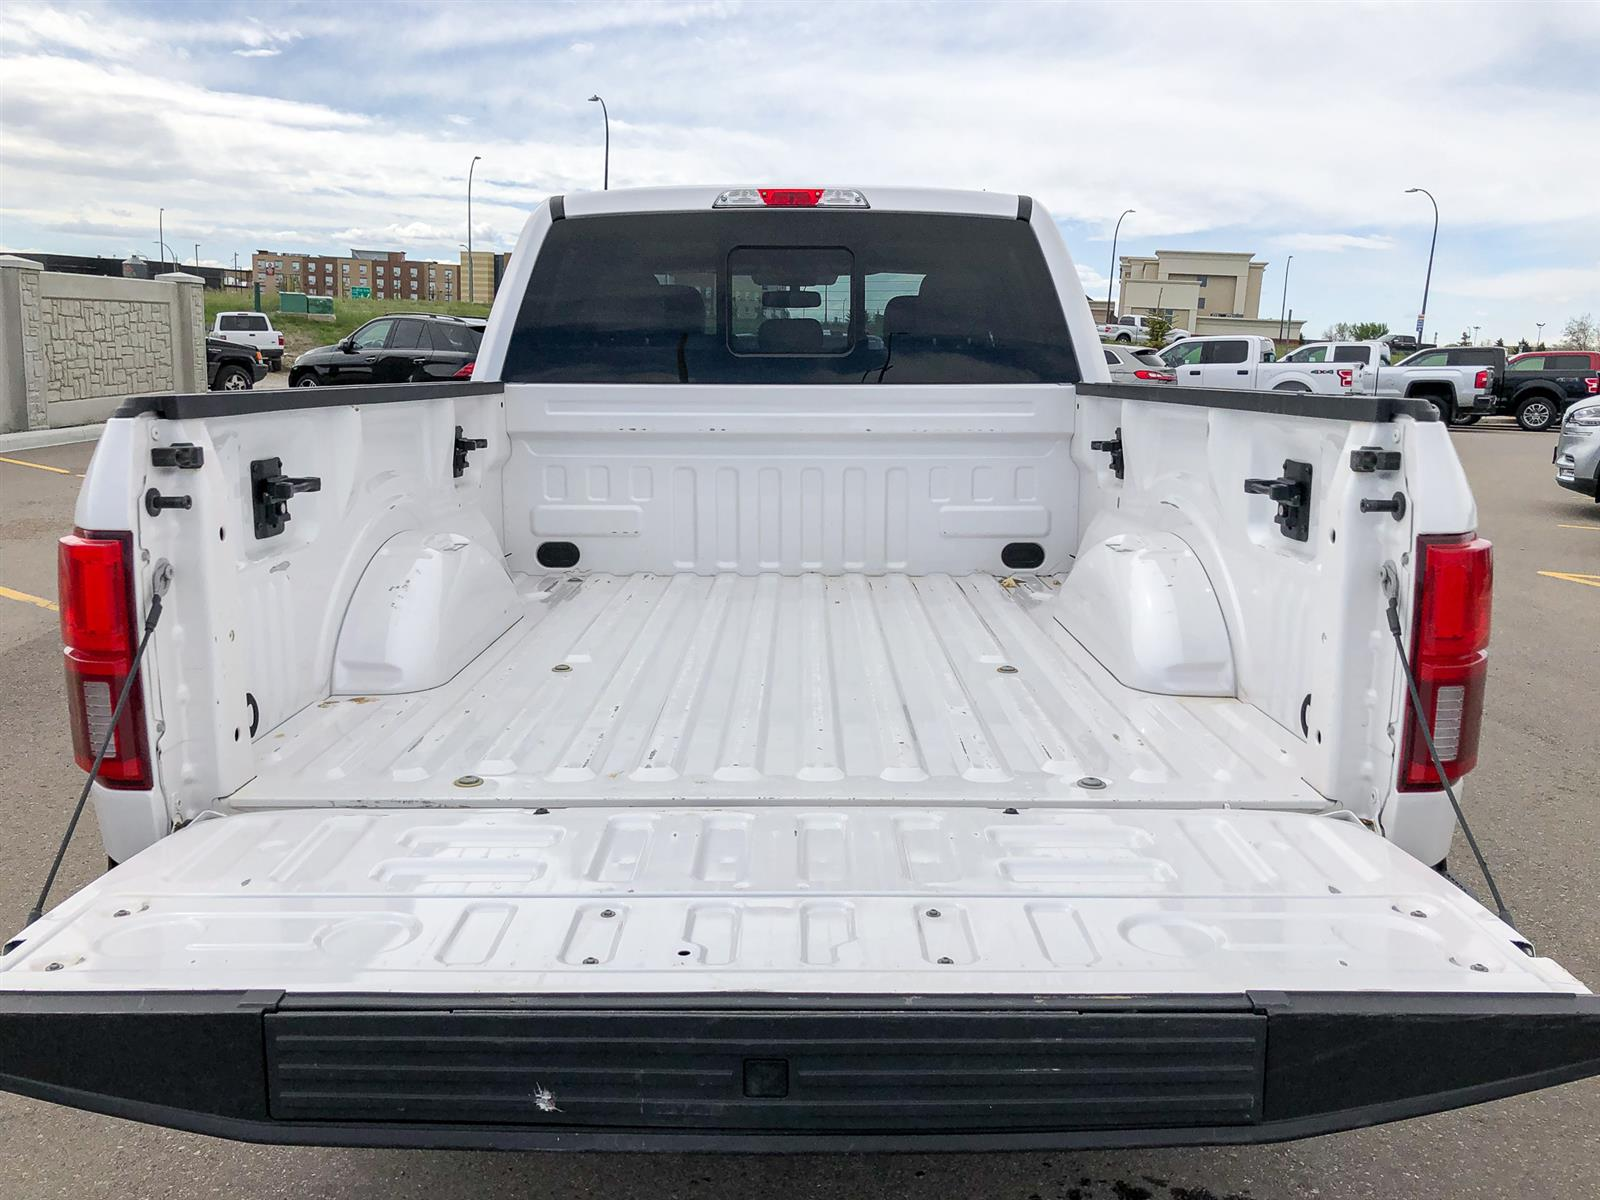 2019 Ford F-150 LARIAT   3.5L V6 ECOBOOST   4X4   MOONROOF   VOICE-ACTIVATED NAV